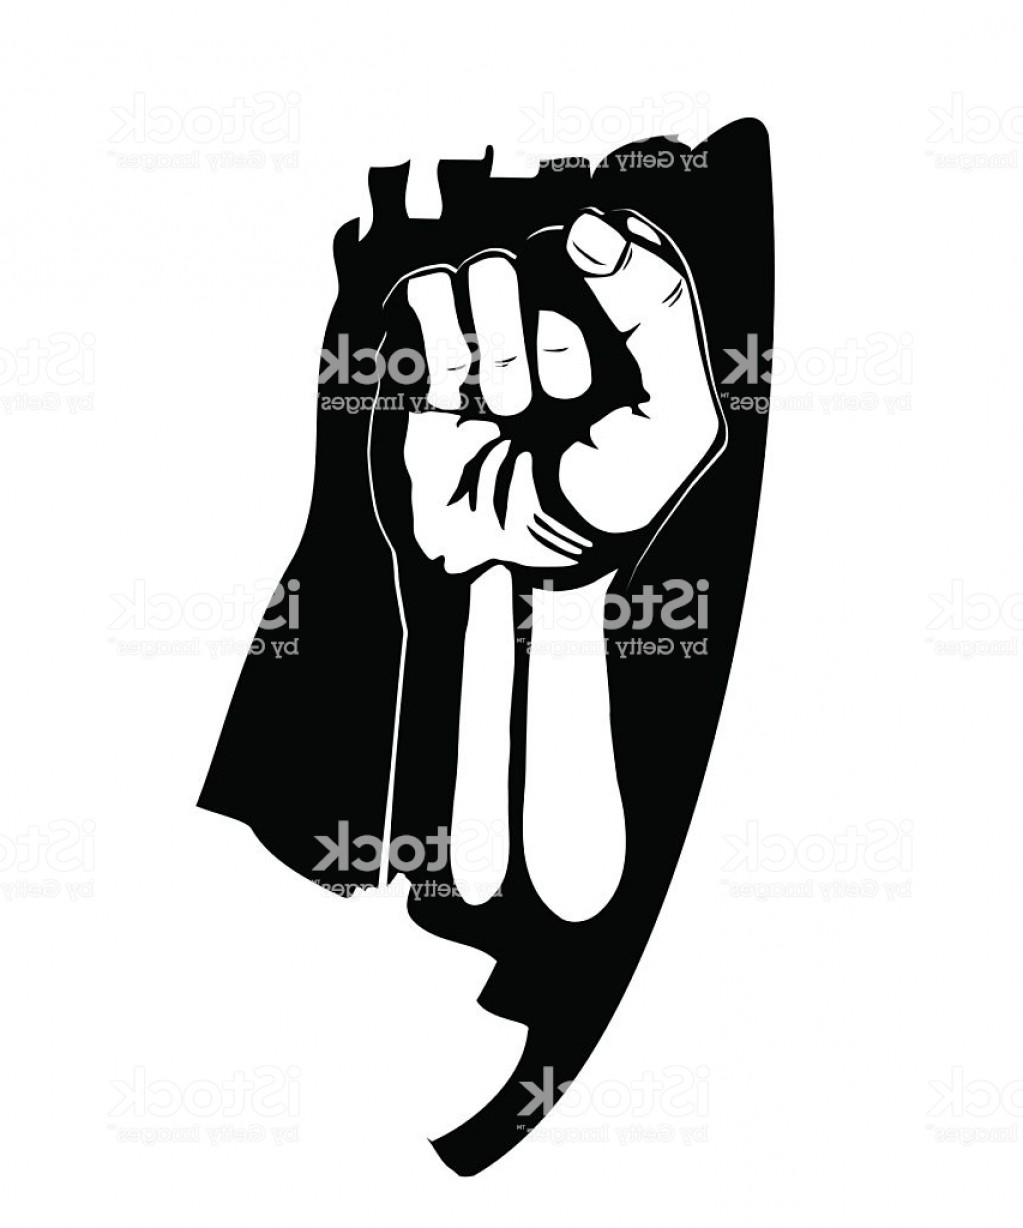 Hand Fist Vector: Clenched Fist Hand Vector Victory Revolt Concept Revolution Gm